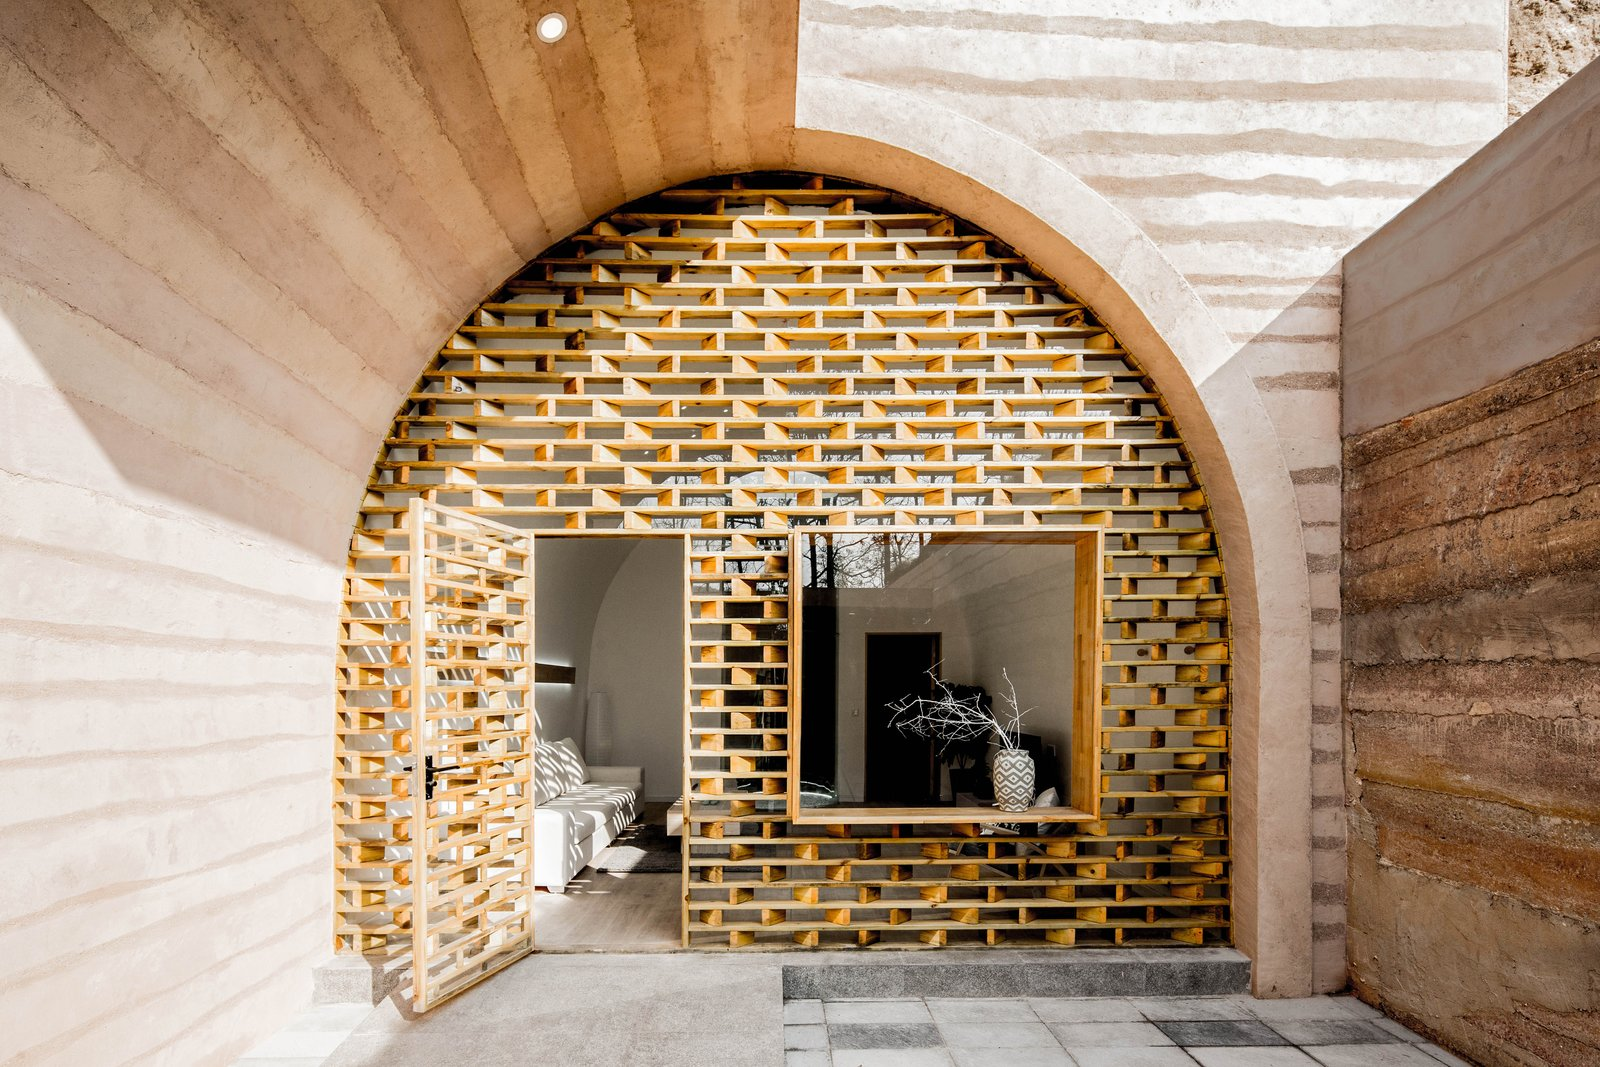 The main entrance of the main cave was transformed into a wooden grid façade and glass curtain wall, allowing ample natural light to enter the space. Tagged: Doors, Exterior, Swing, and Wood.  Best Doors Photos from An Old Cave Dwelling in Central China Is Transformed Into a Stylish Home